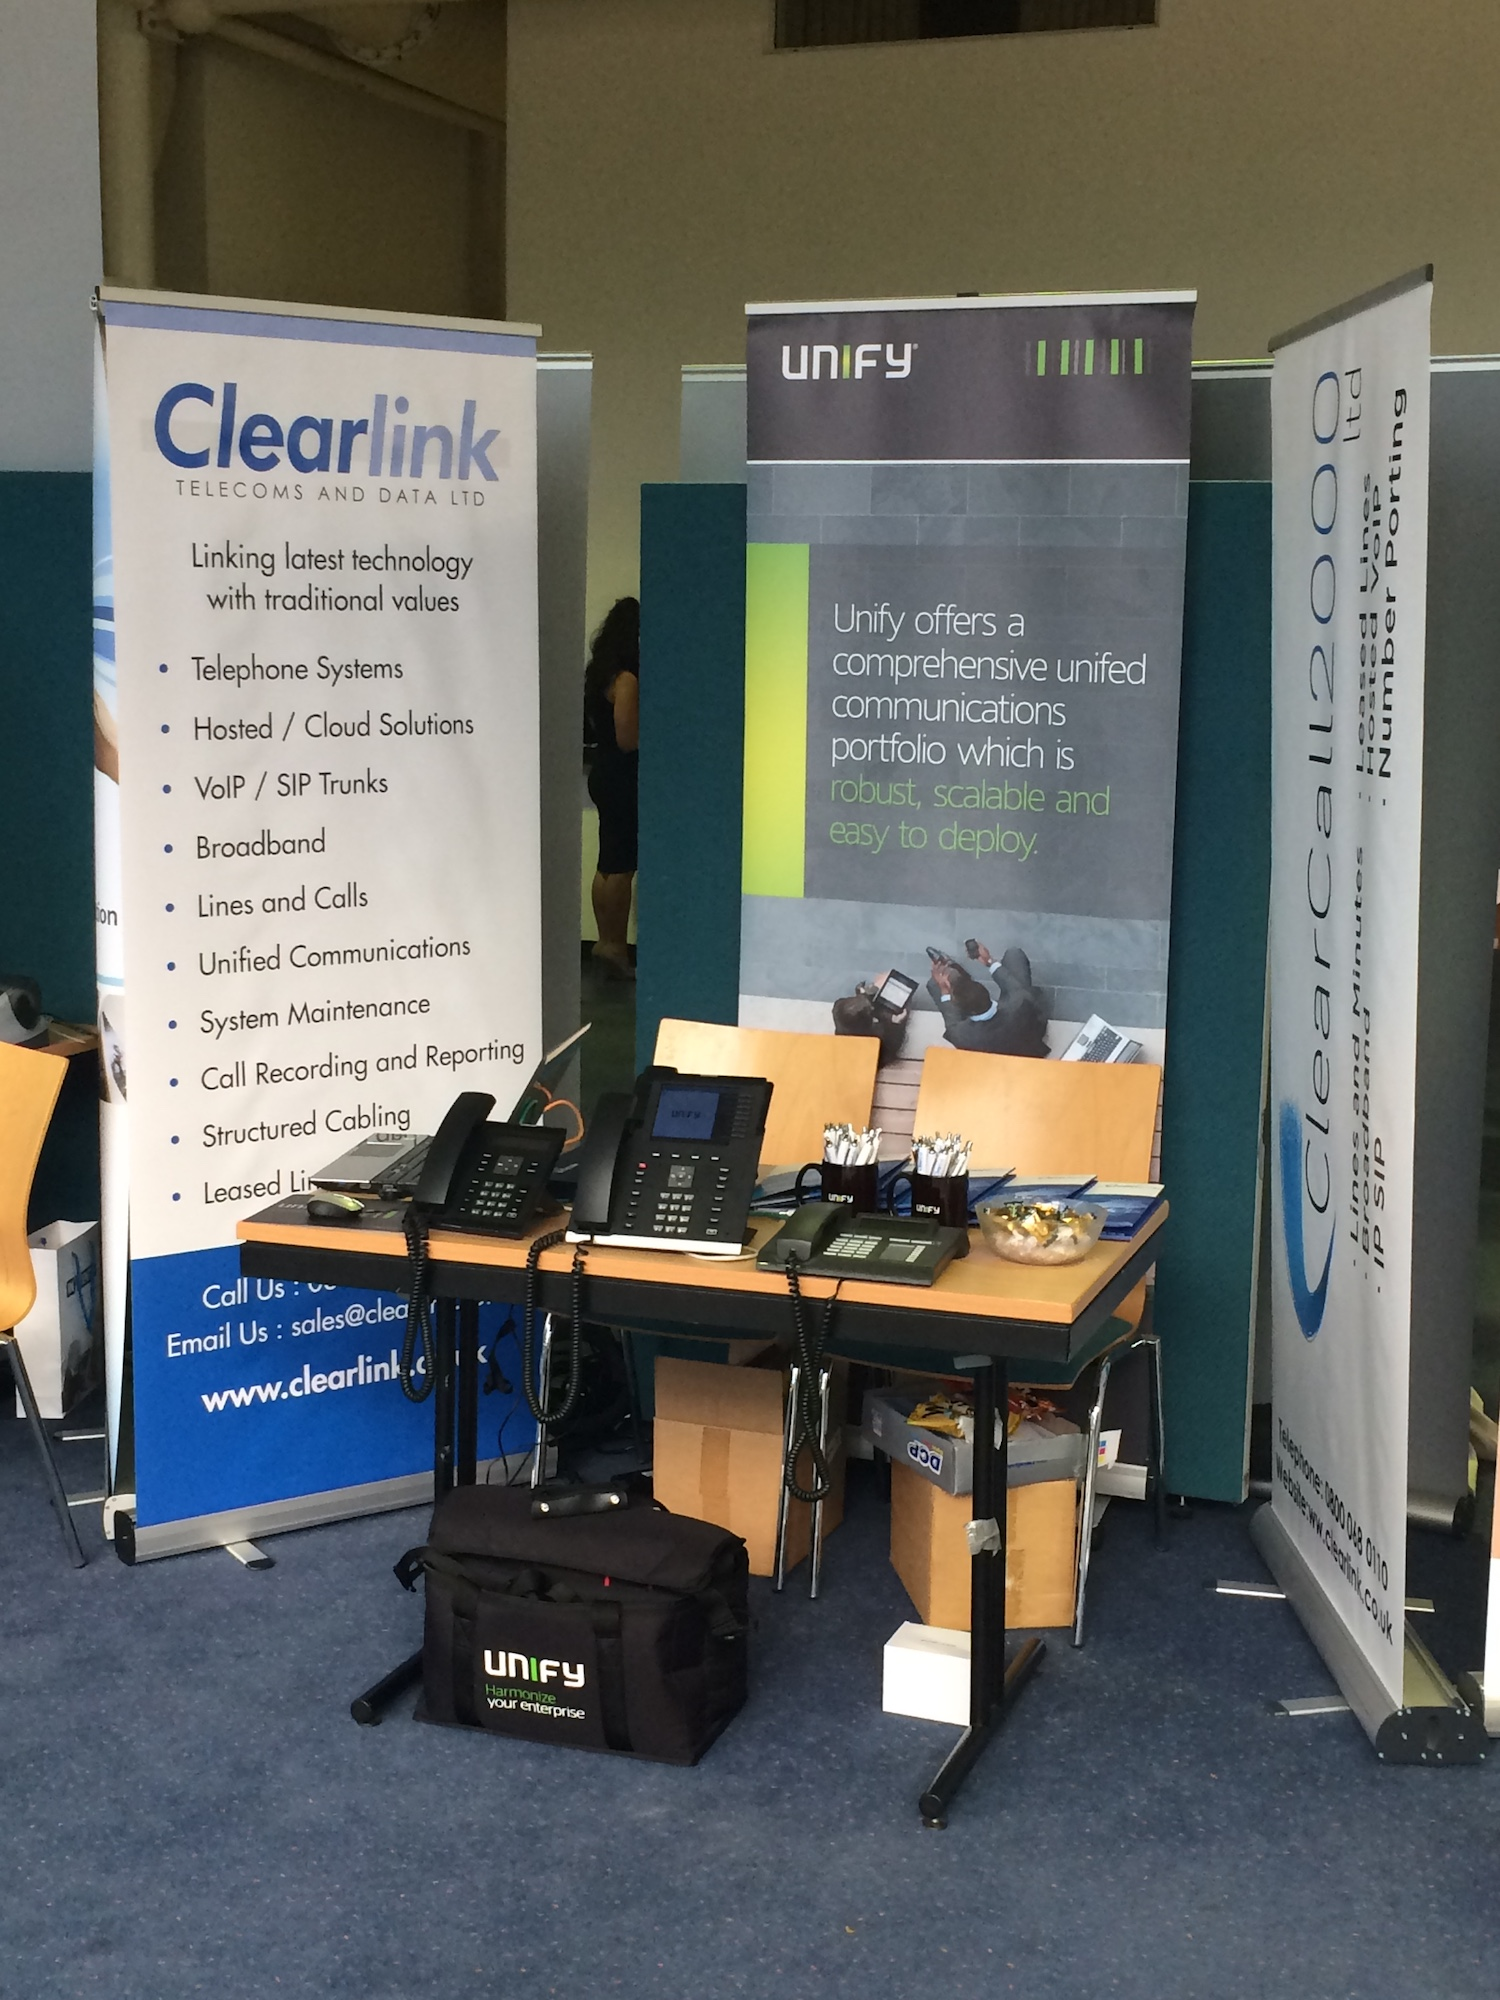 clearlink and unify school phone systems